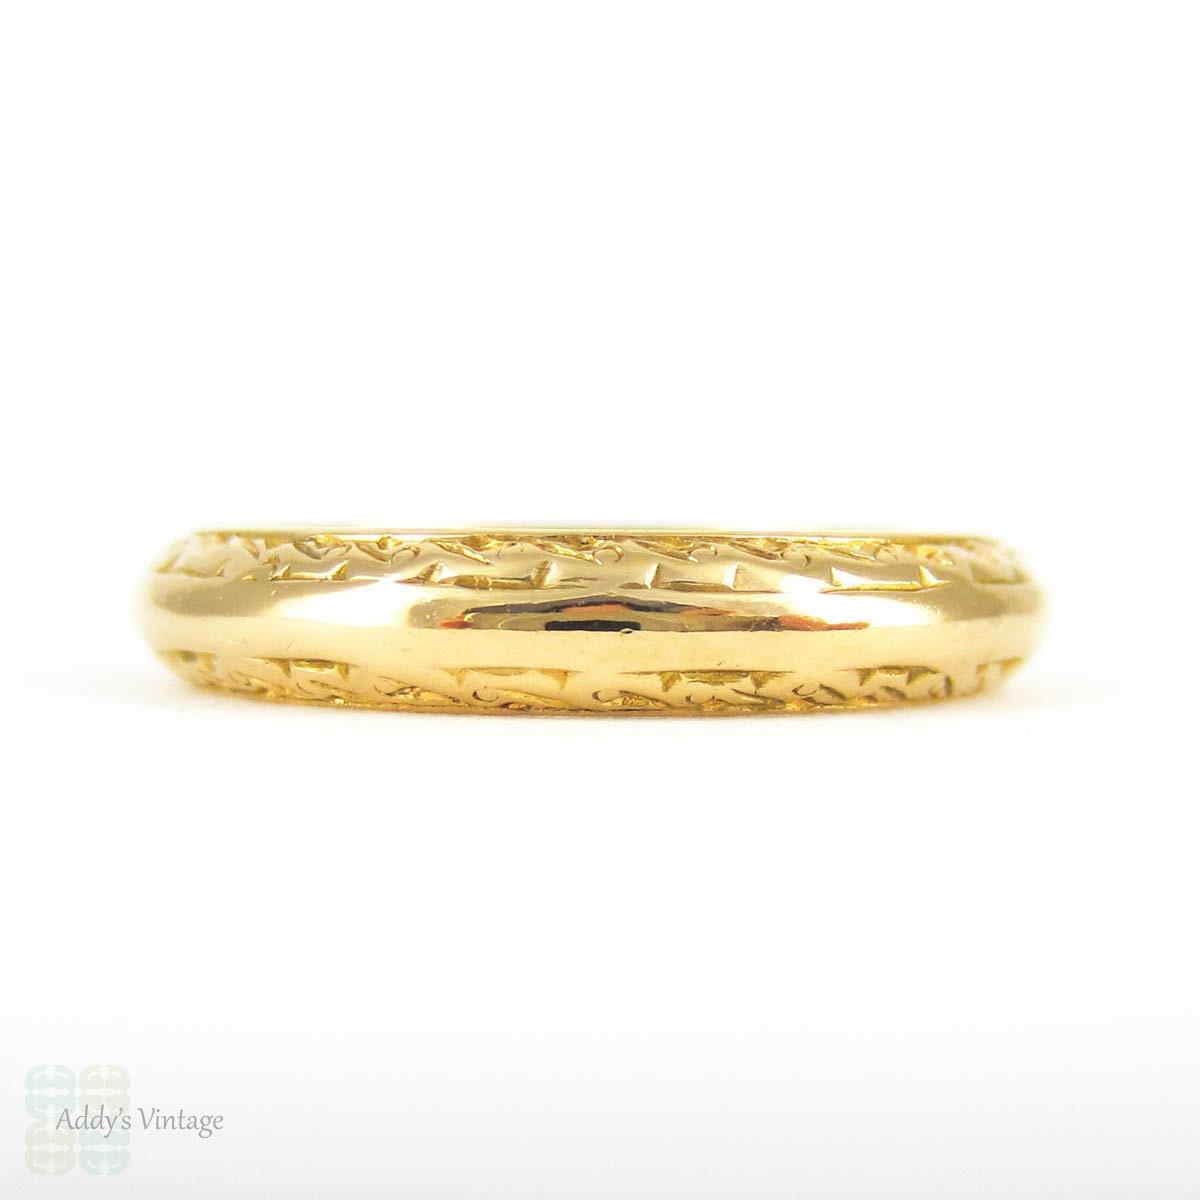 22 carat gold engraved wedding ring d profile by addy